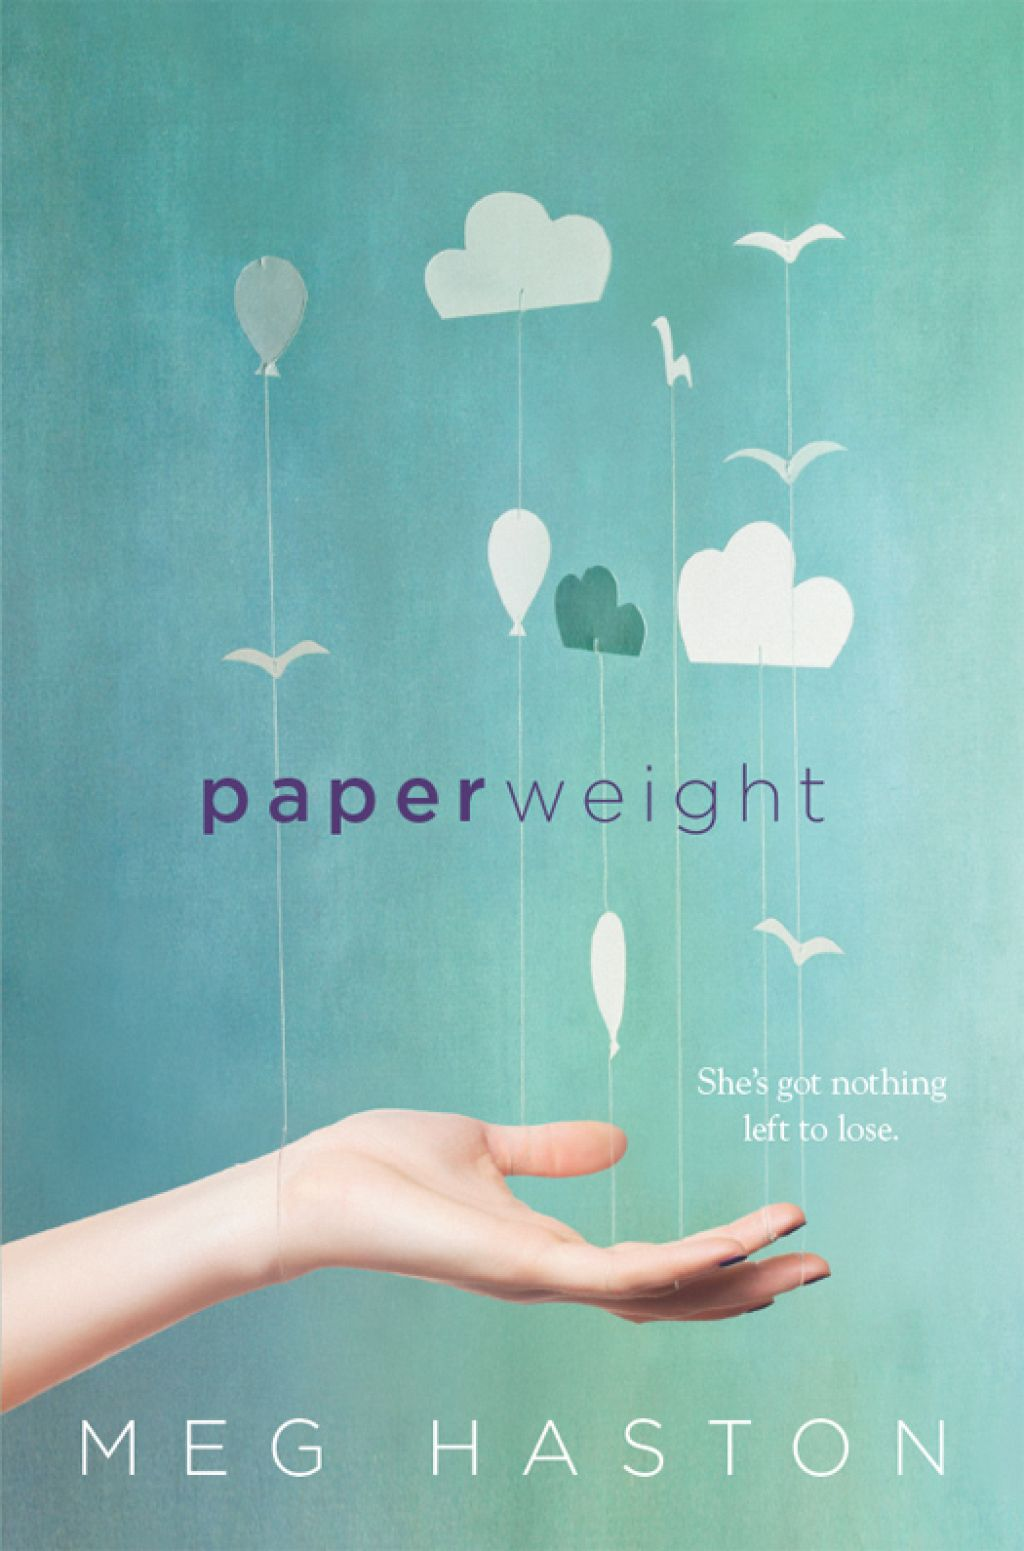 Paperweight (eBook) | Products | Books about mental illness